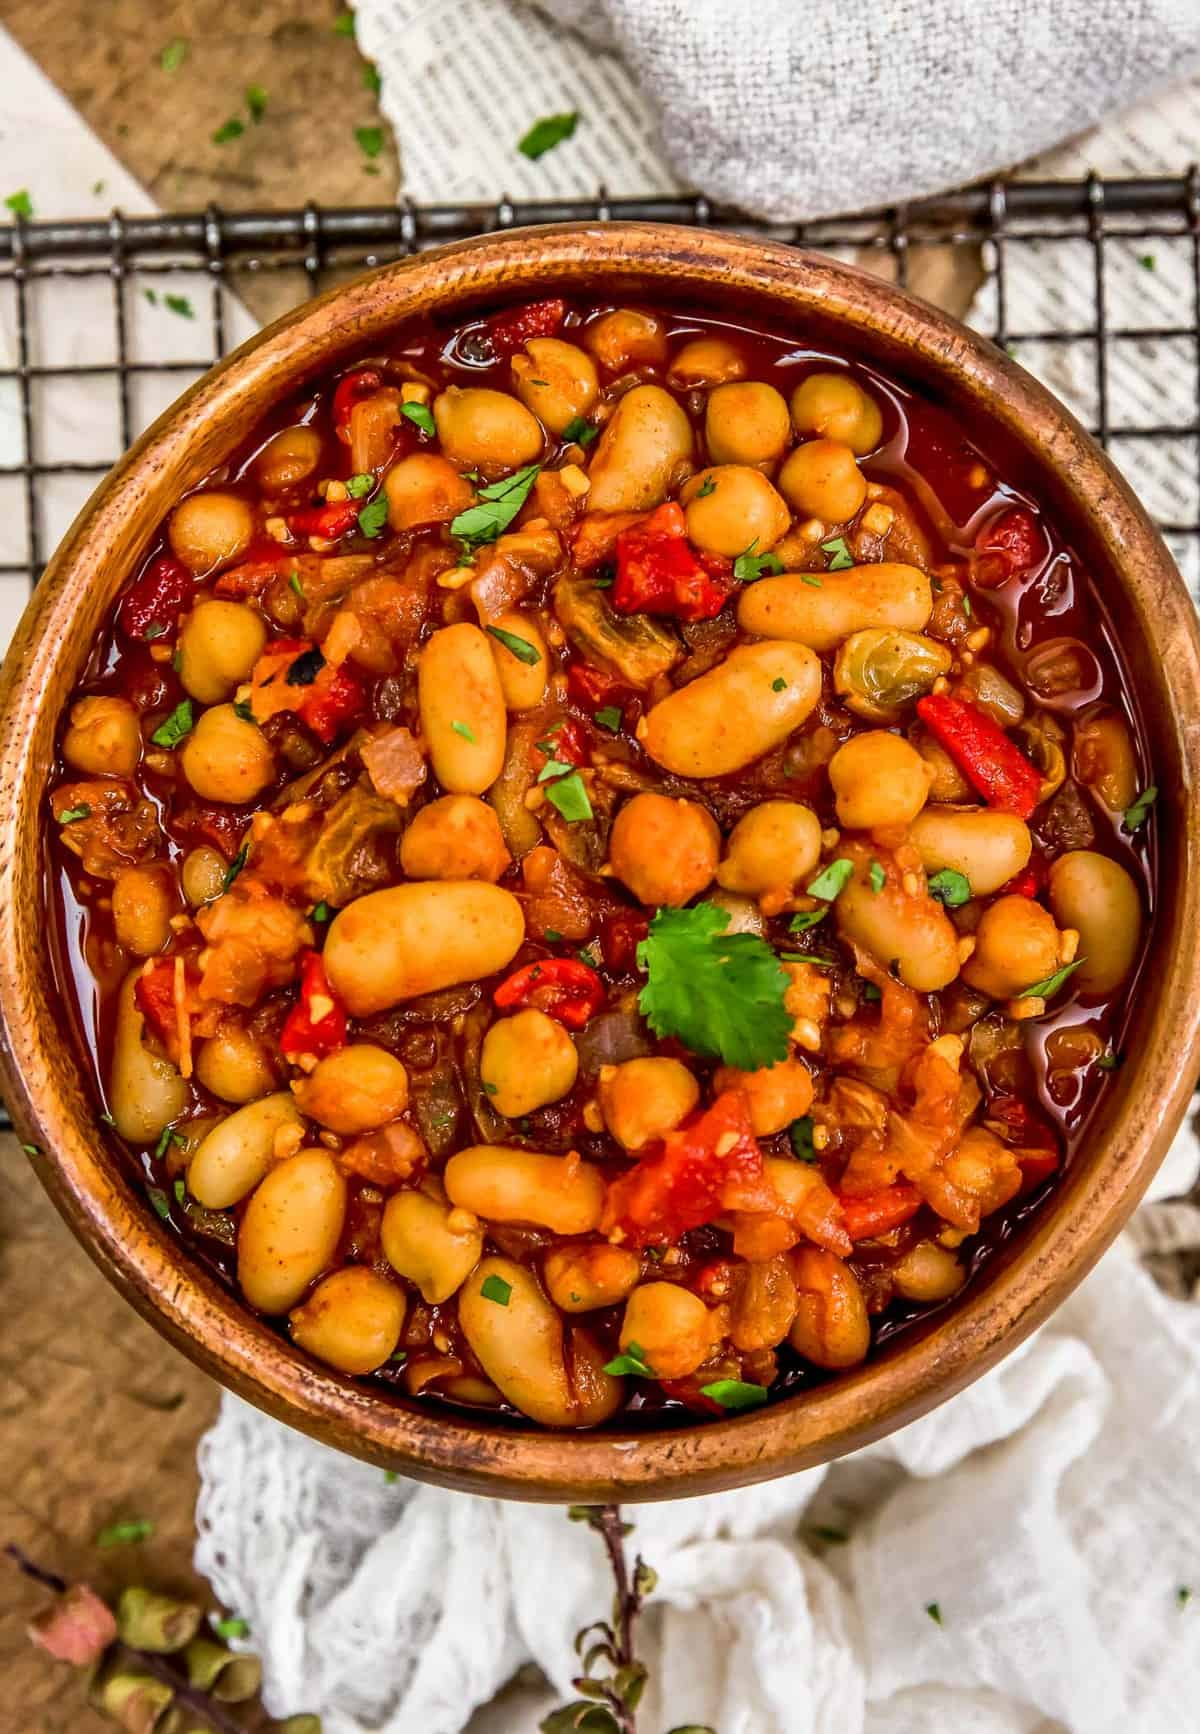 Bowl of Moroccan Skillet Beans